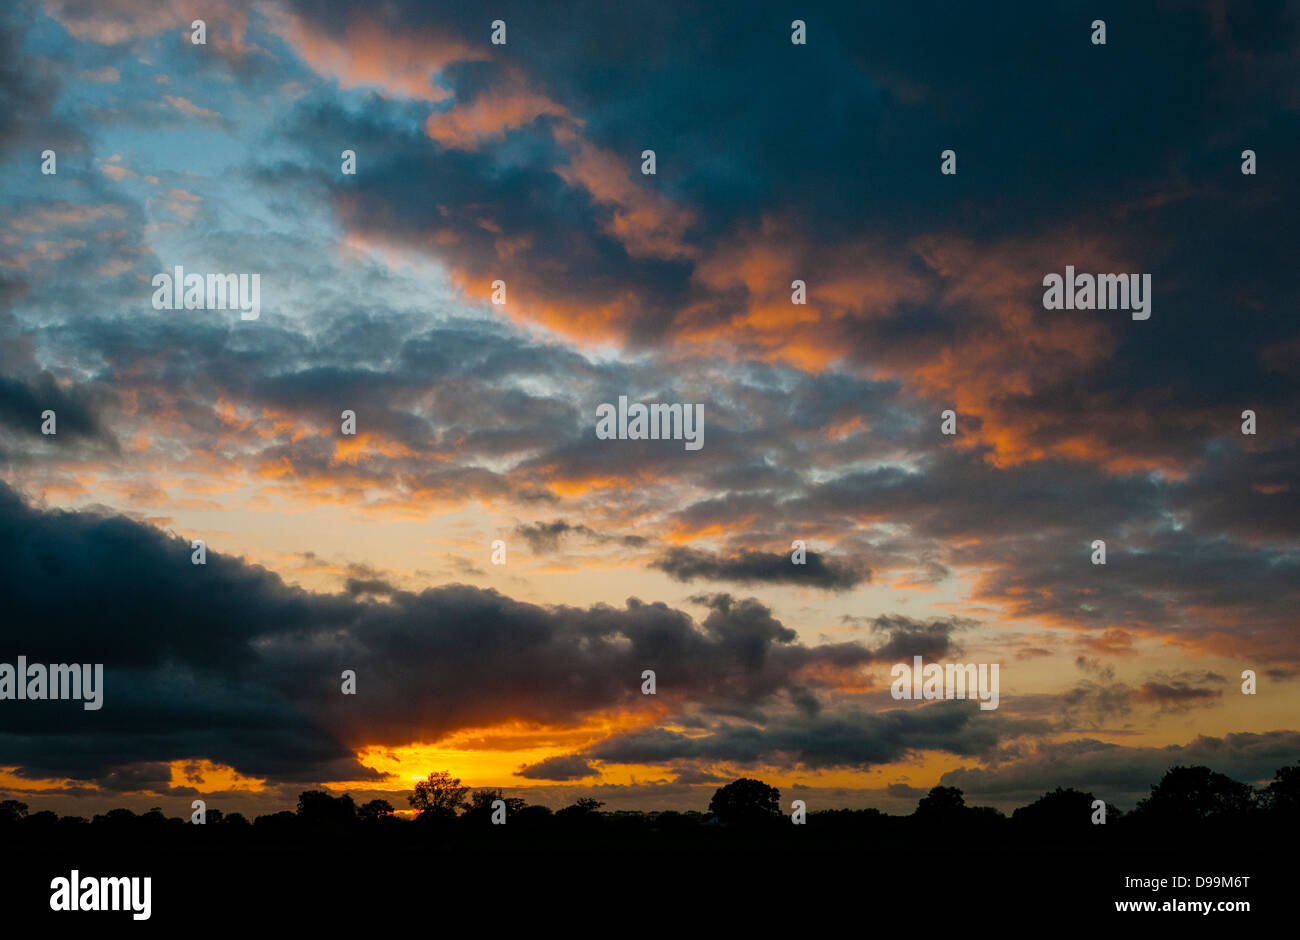 Clouds illuminated by sunset, over countryside horizon. - Stock Image